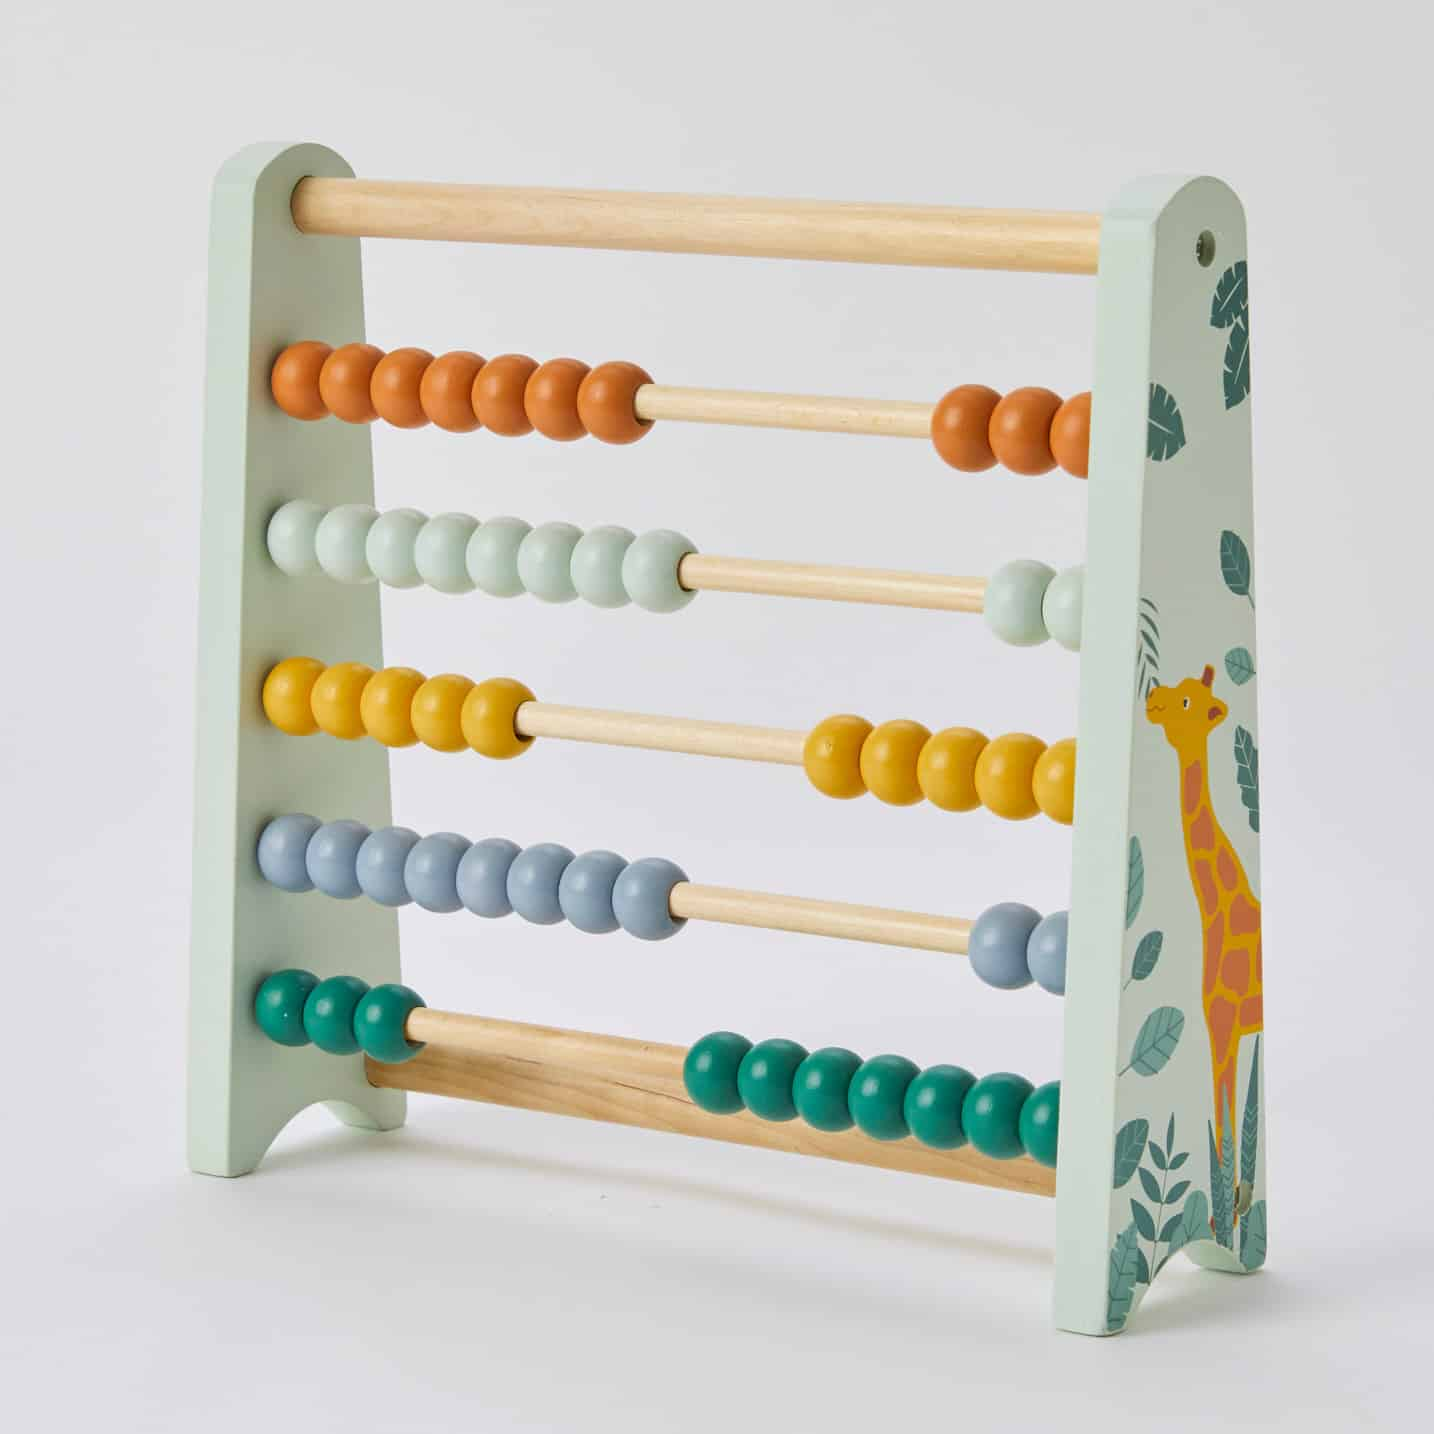 Abacus 12m+